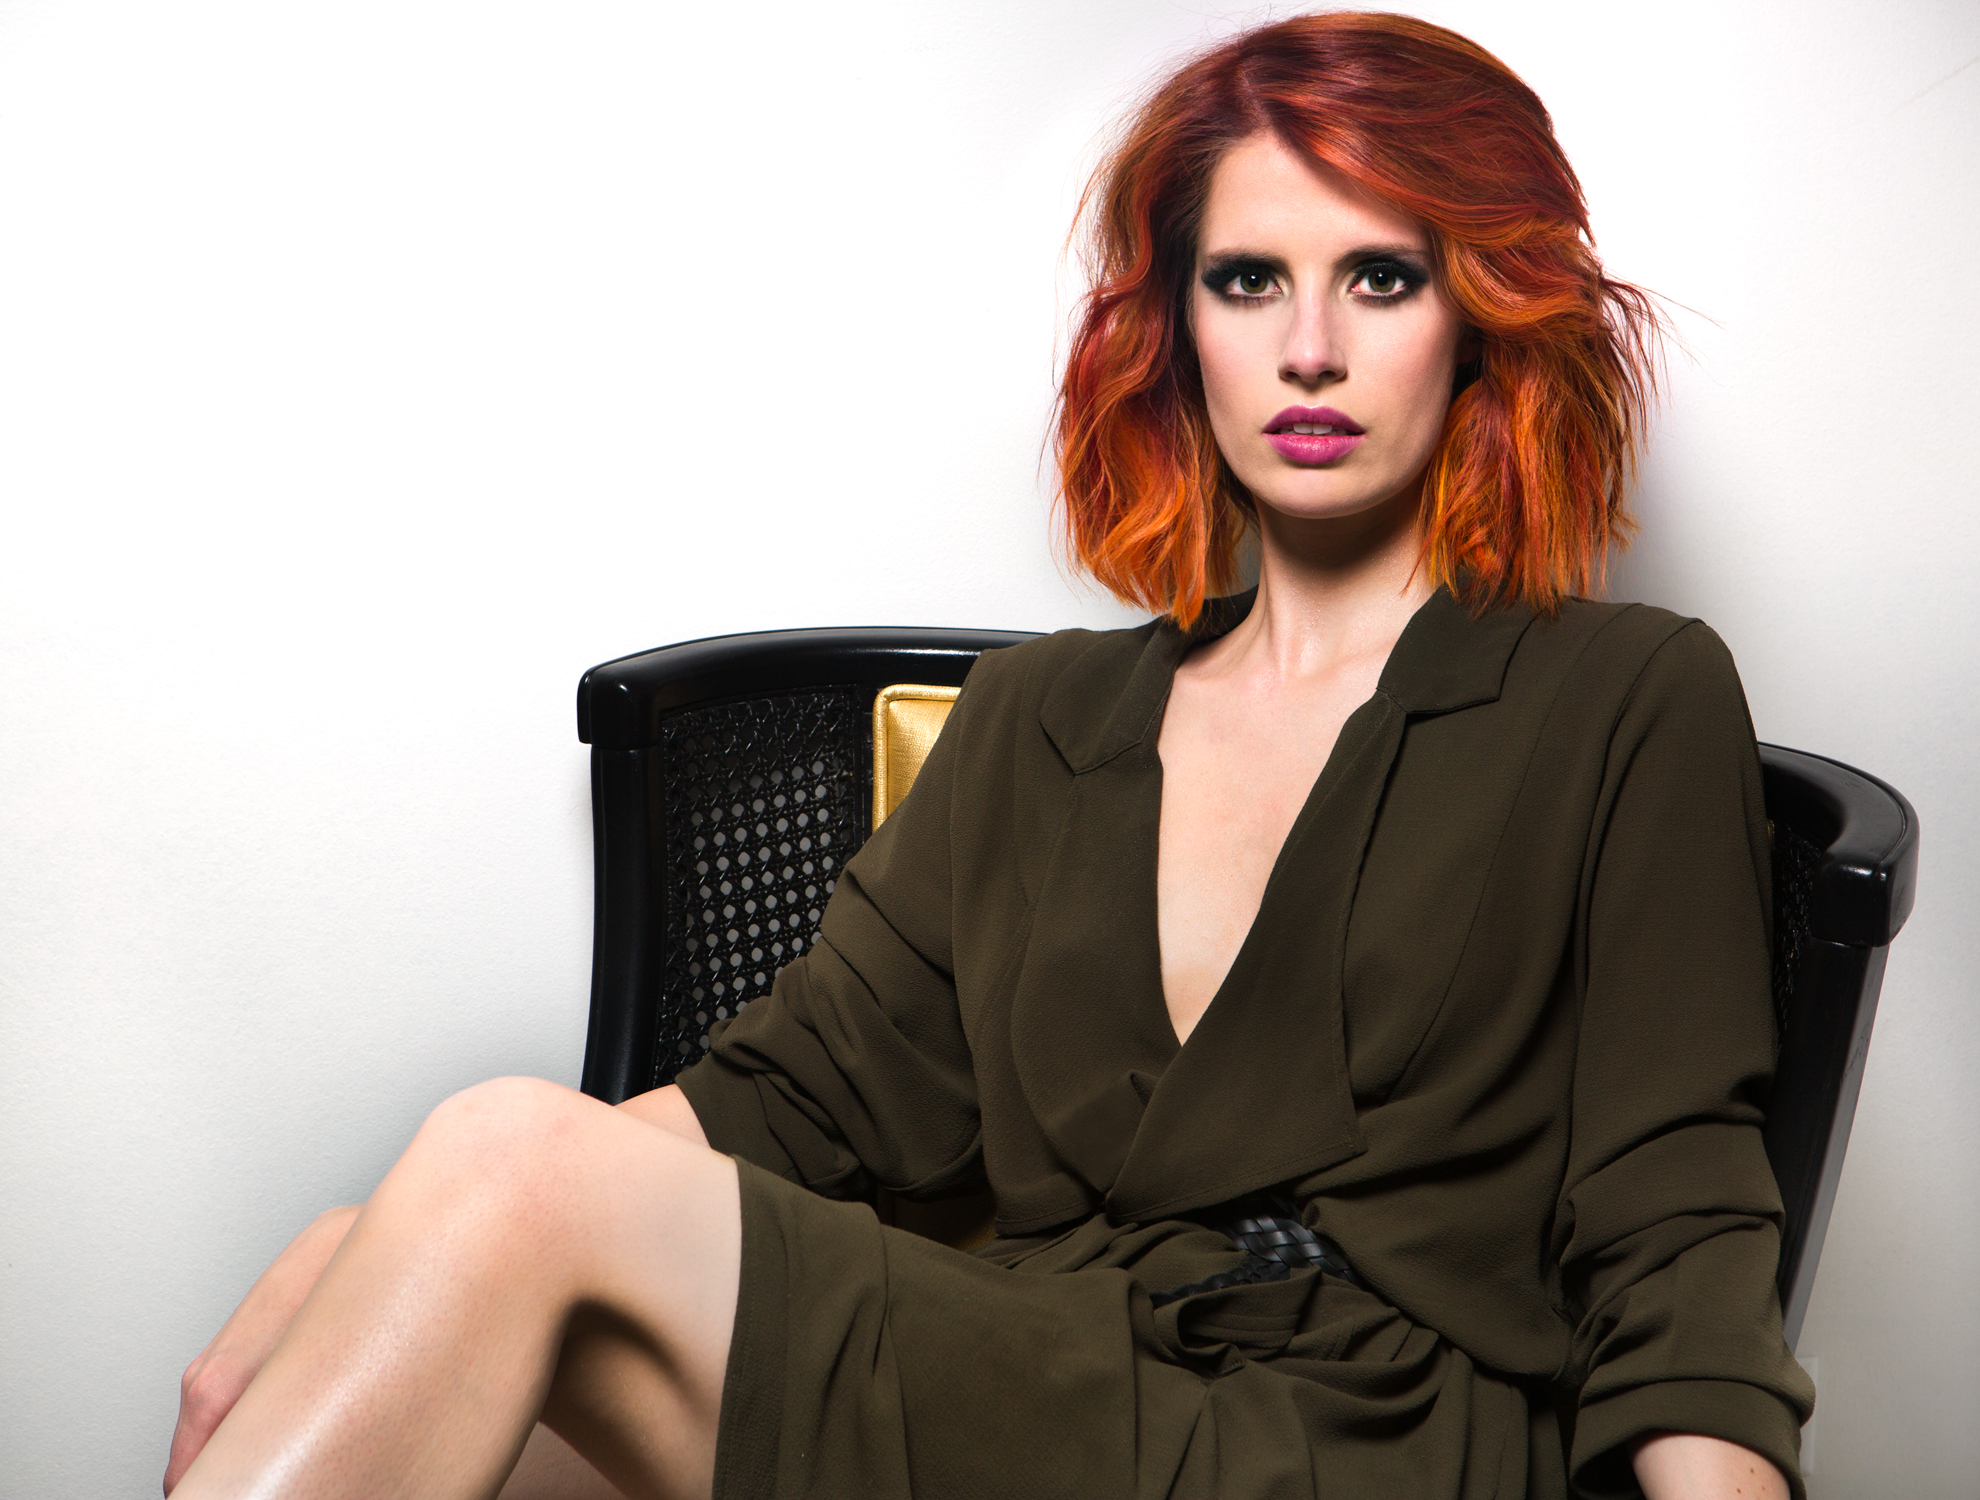 Aveda Formula: Blonde Meets Fire Red Balayage with a Blunt Texturized Bob